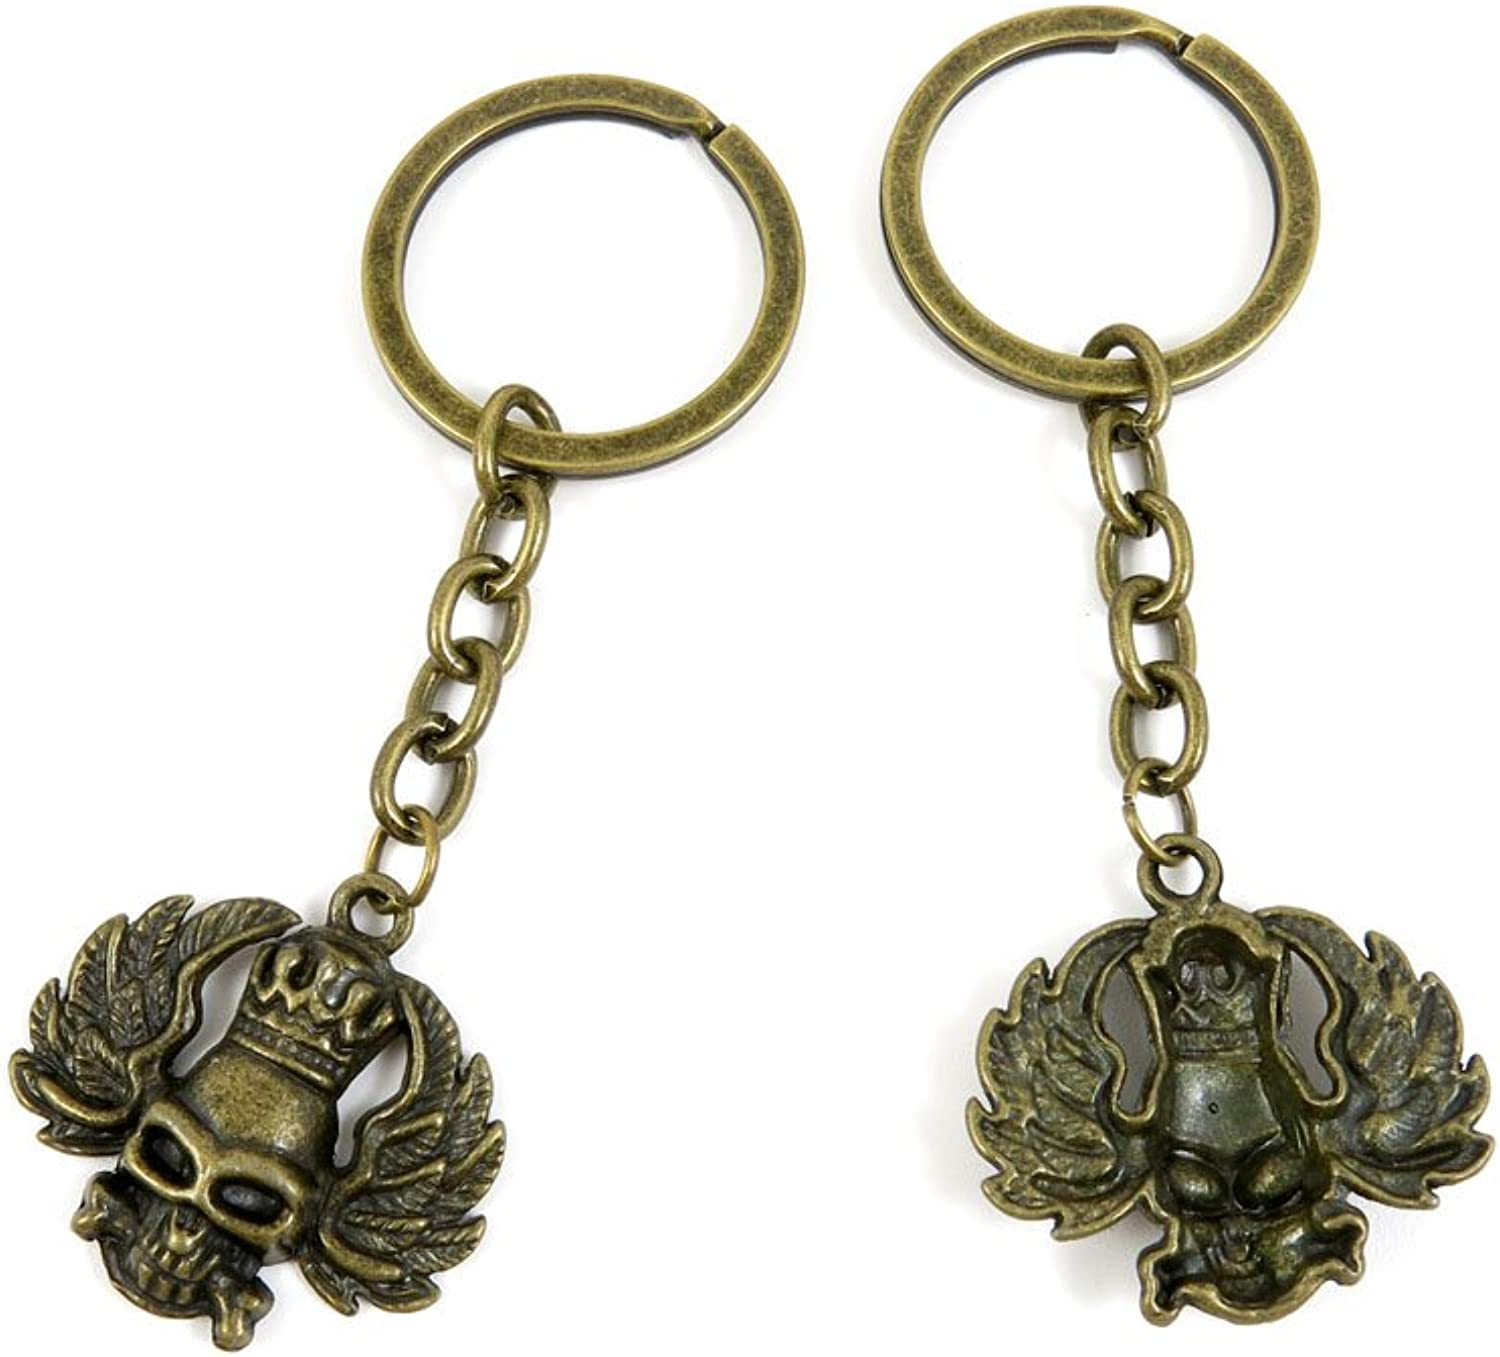 100 PCS Keyrings Keychains Key Ring Chains Tags Jewelry Findings Clasps Buckles Supplies P7PF3 King Skull